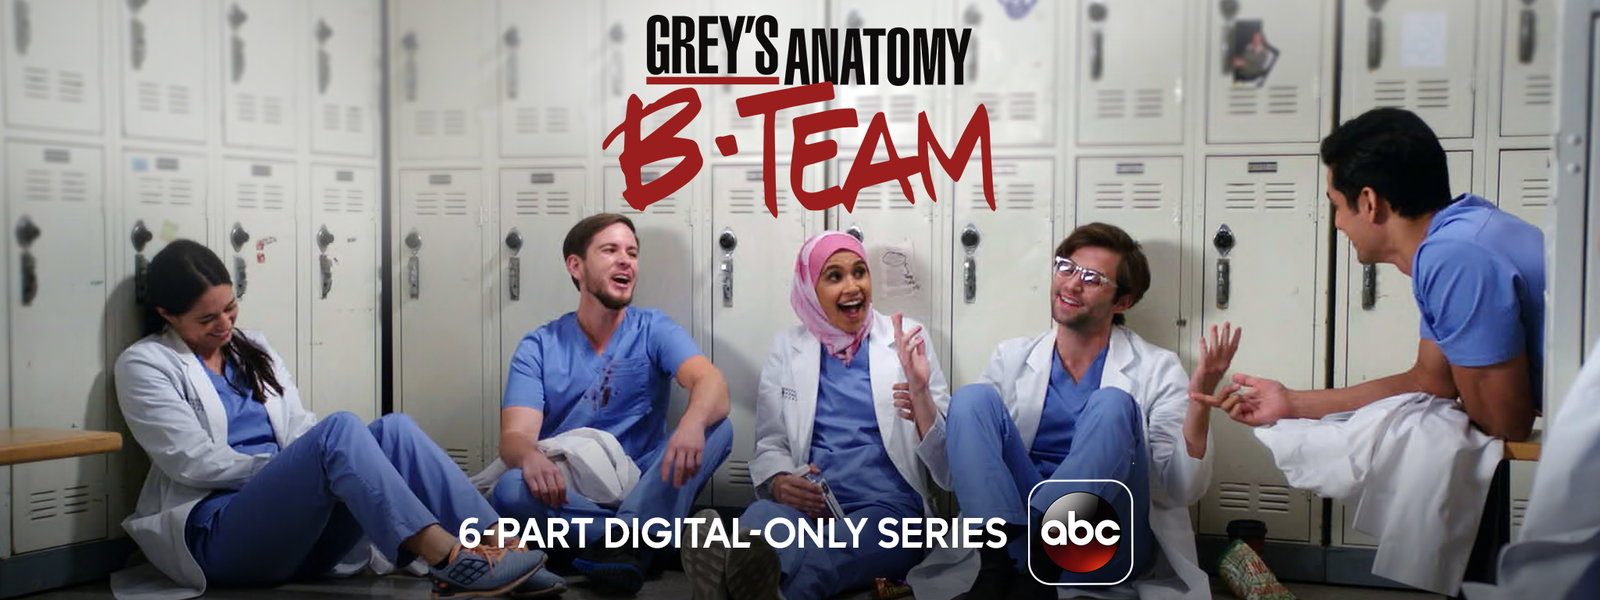 Watch Greys Anatomy B Team Online At Hulu